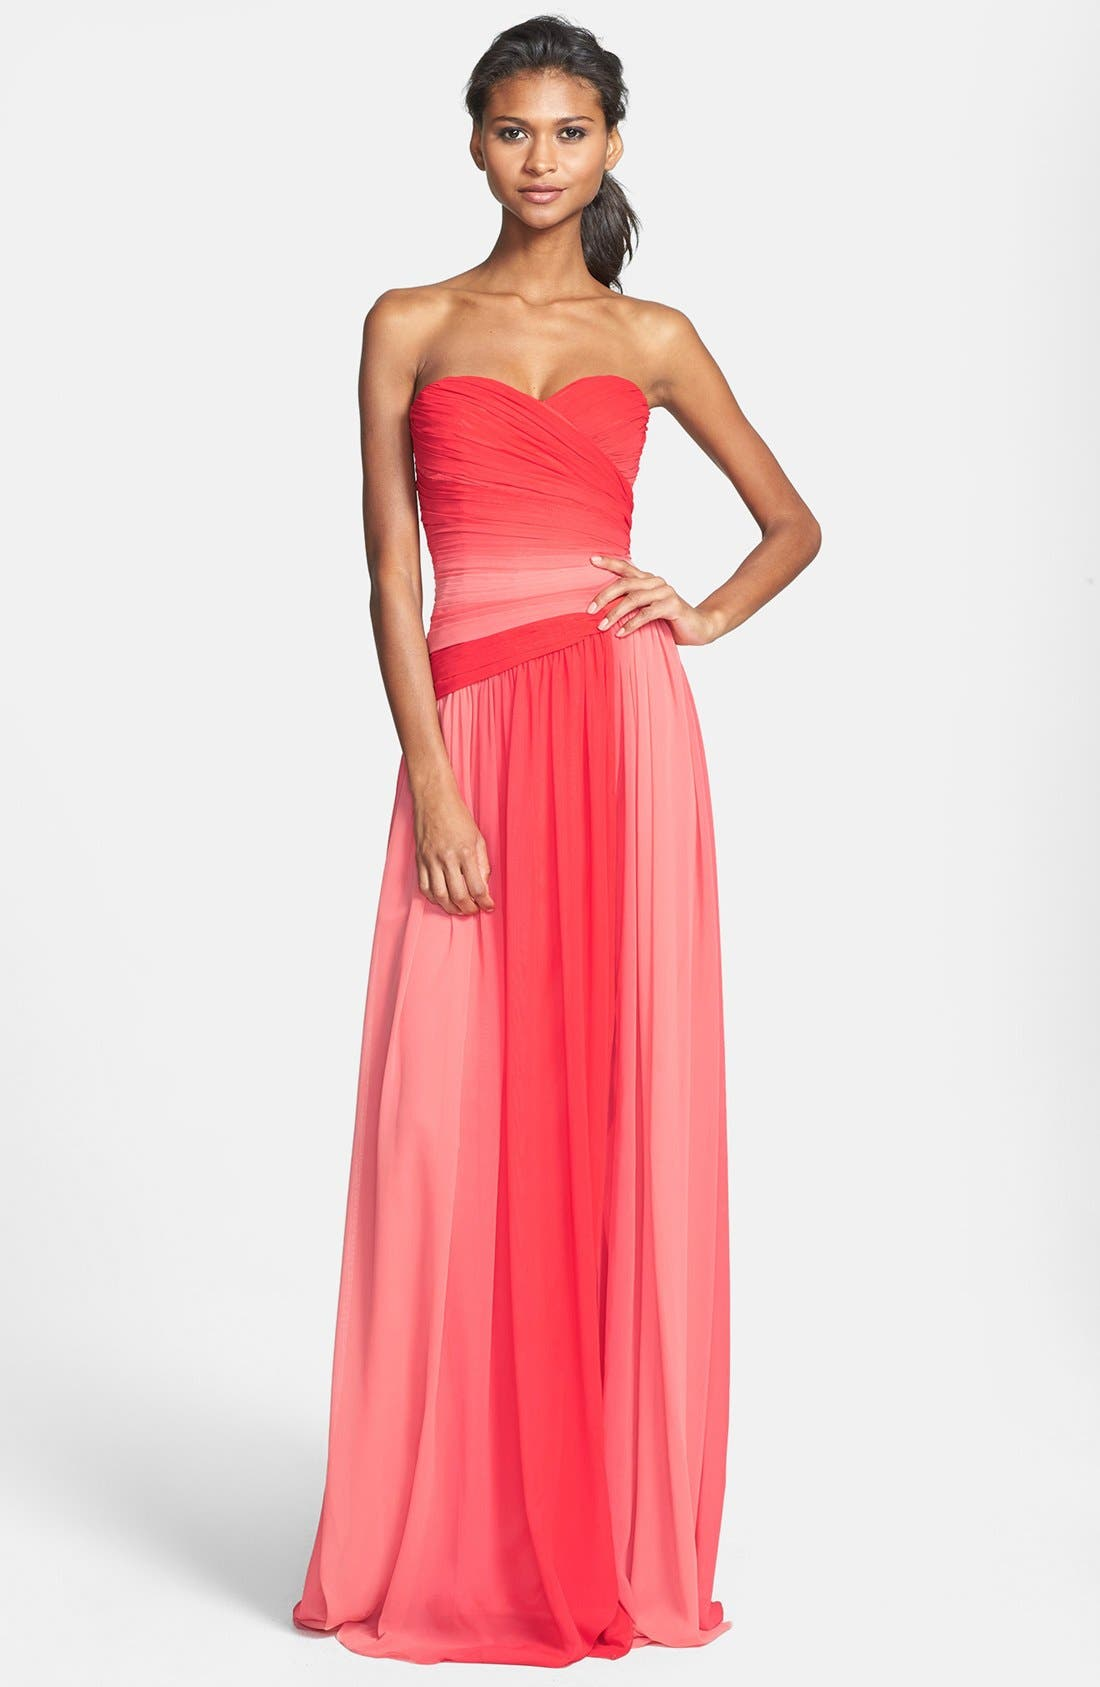 Main Image - ML Monique Lhuillier Bridesmaids Ombré Chiffon Gown